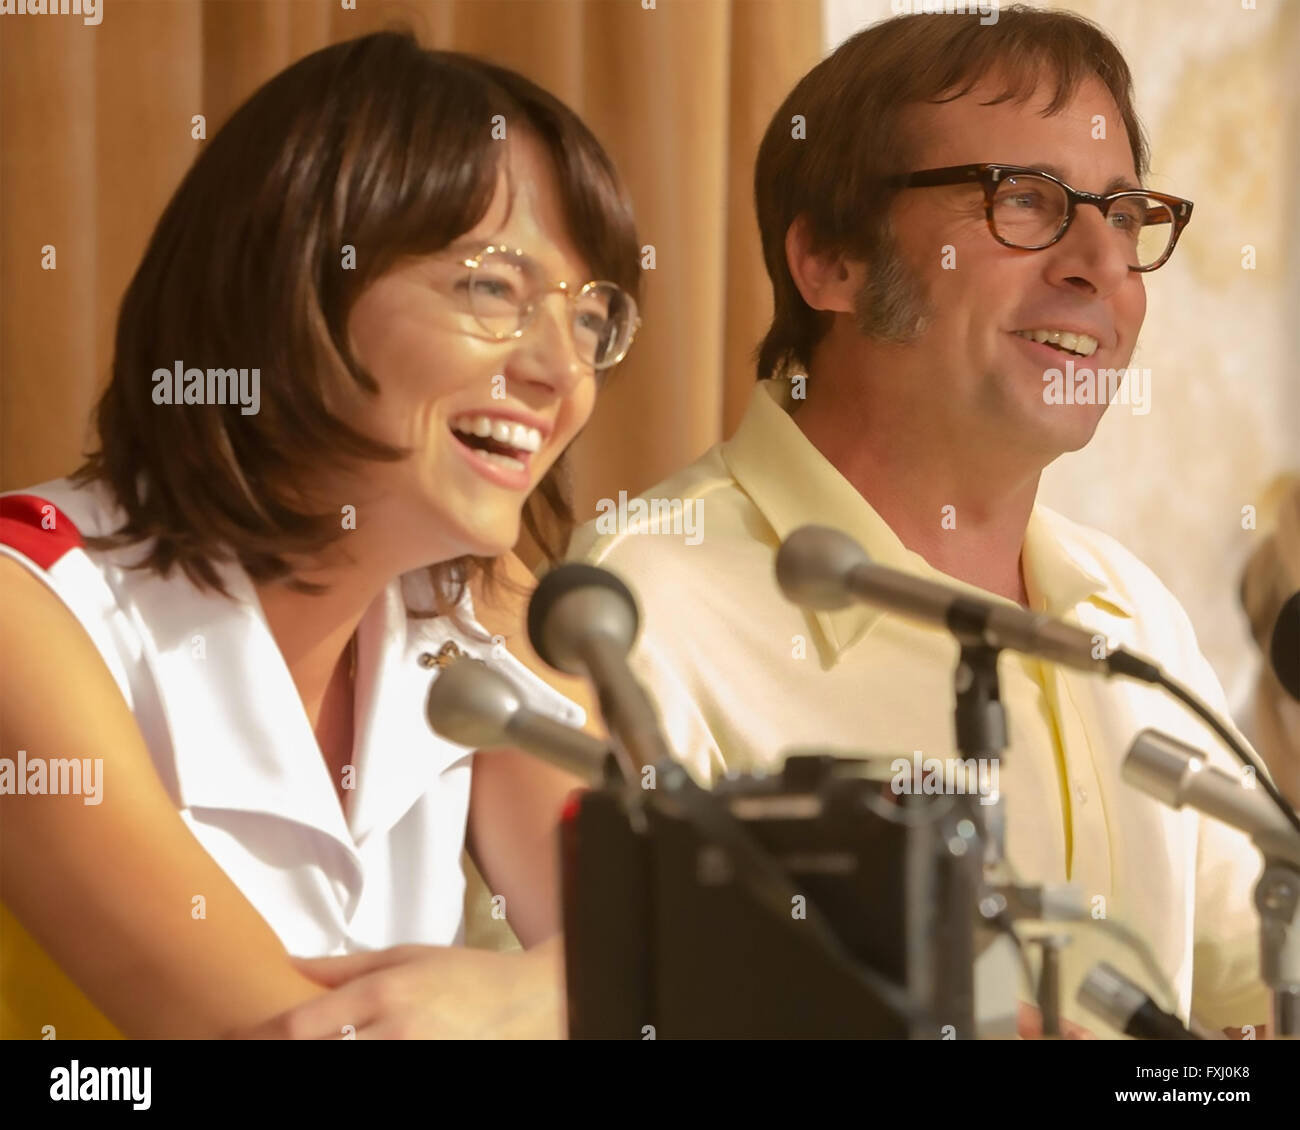 BATTLE OF THE SEXES 2016 Fox Searchlight film with Emma Stone and Steve Carell - Stock Image